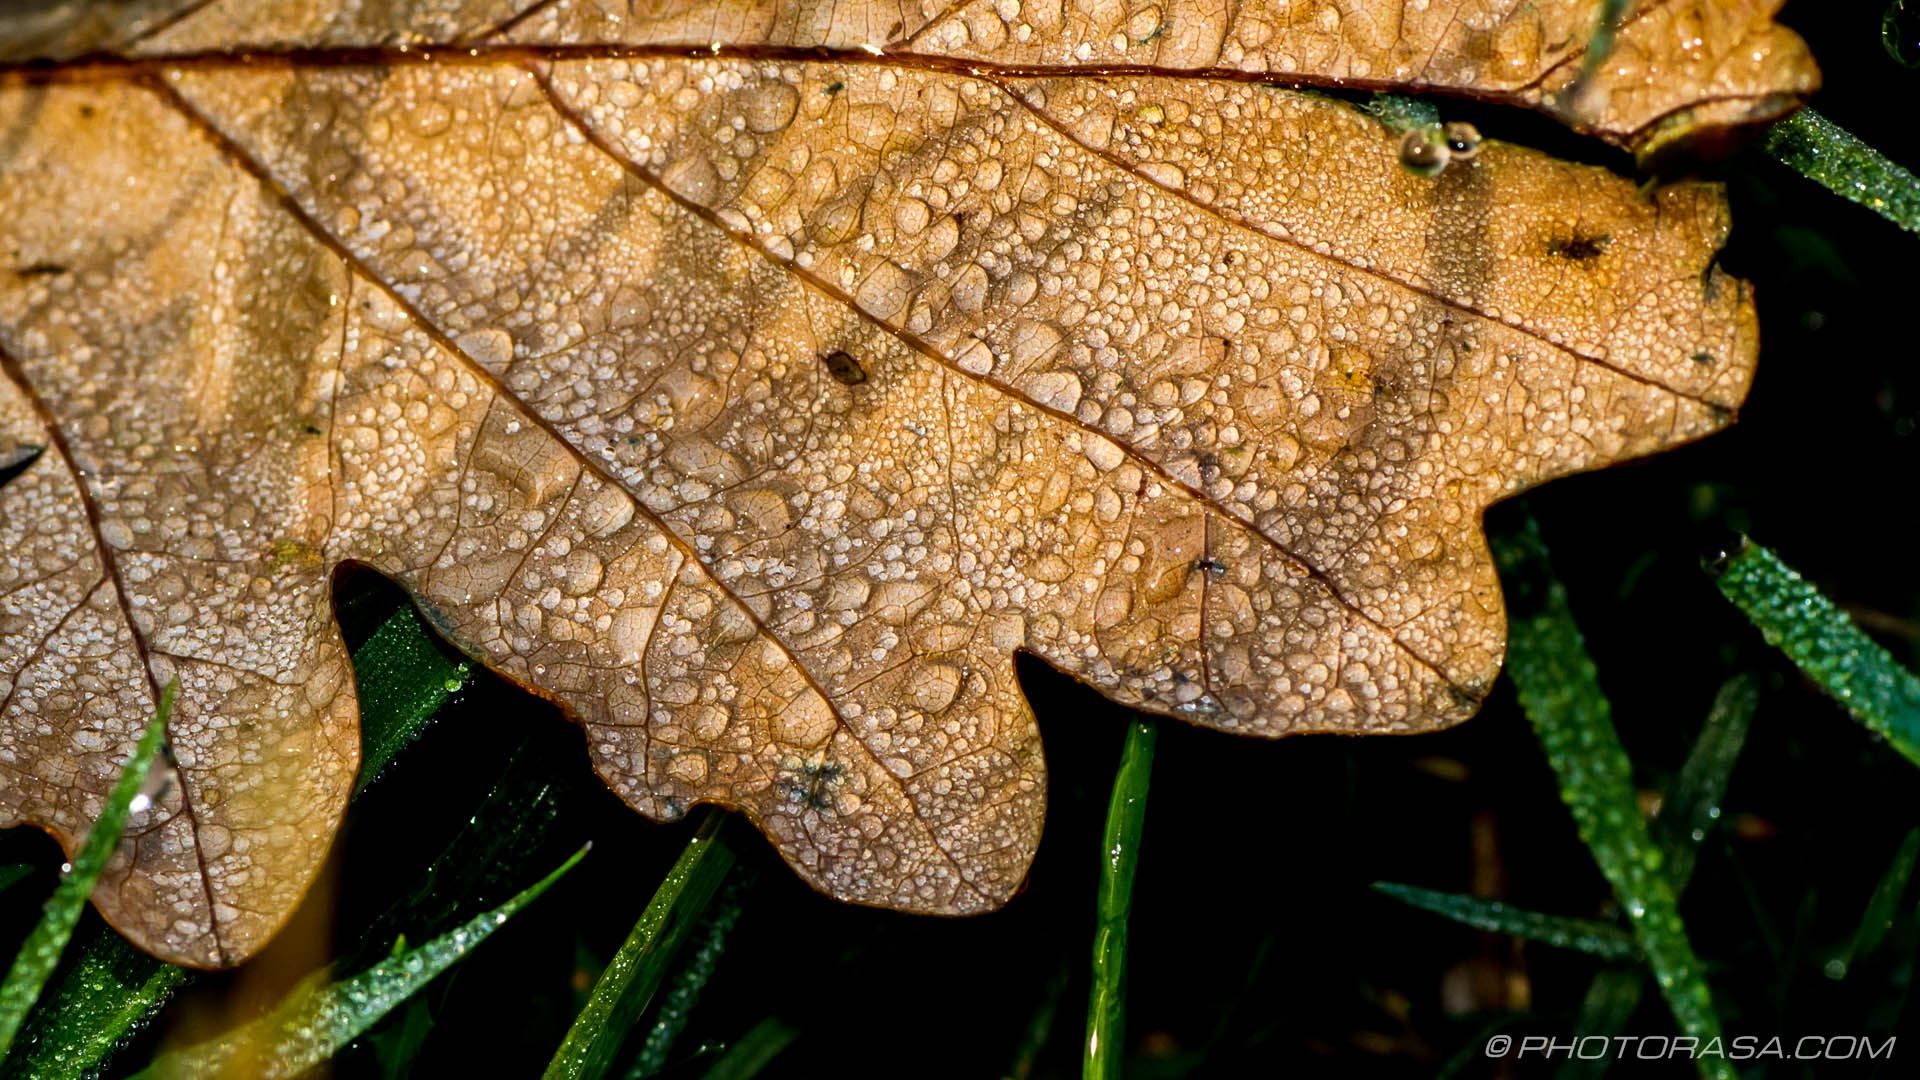 https://photorasa.com/leaves/brown-oak-leaf-with-dew-and-grass-shadow/